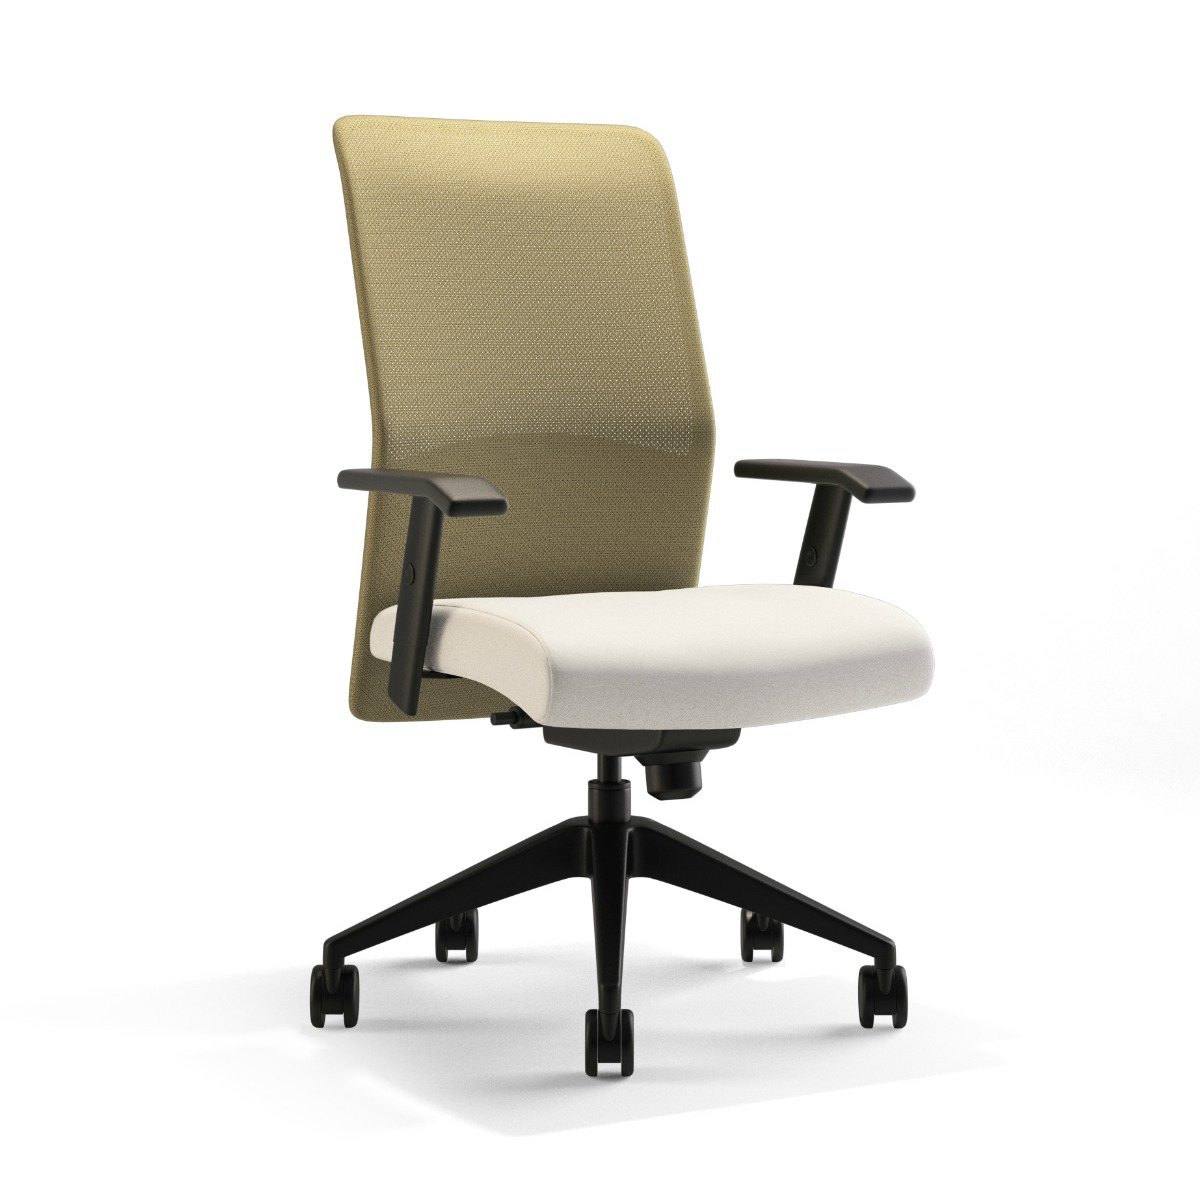 Via Chairs Shop Via Proform Chair With Mesh Back At The Human Solution